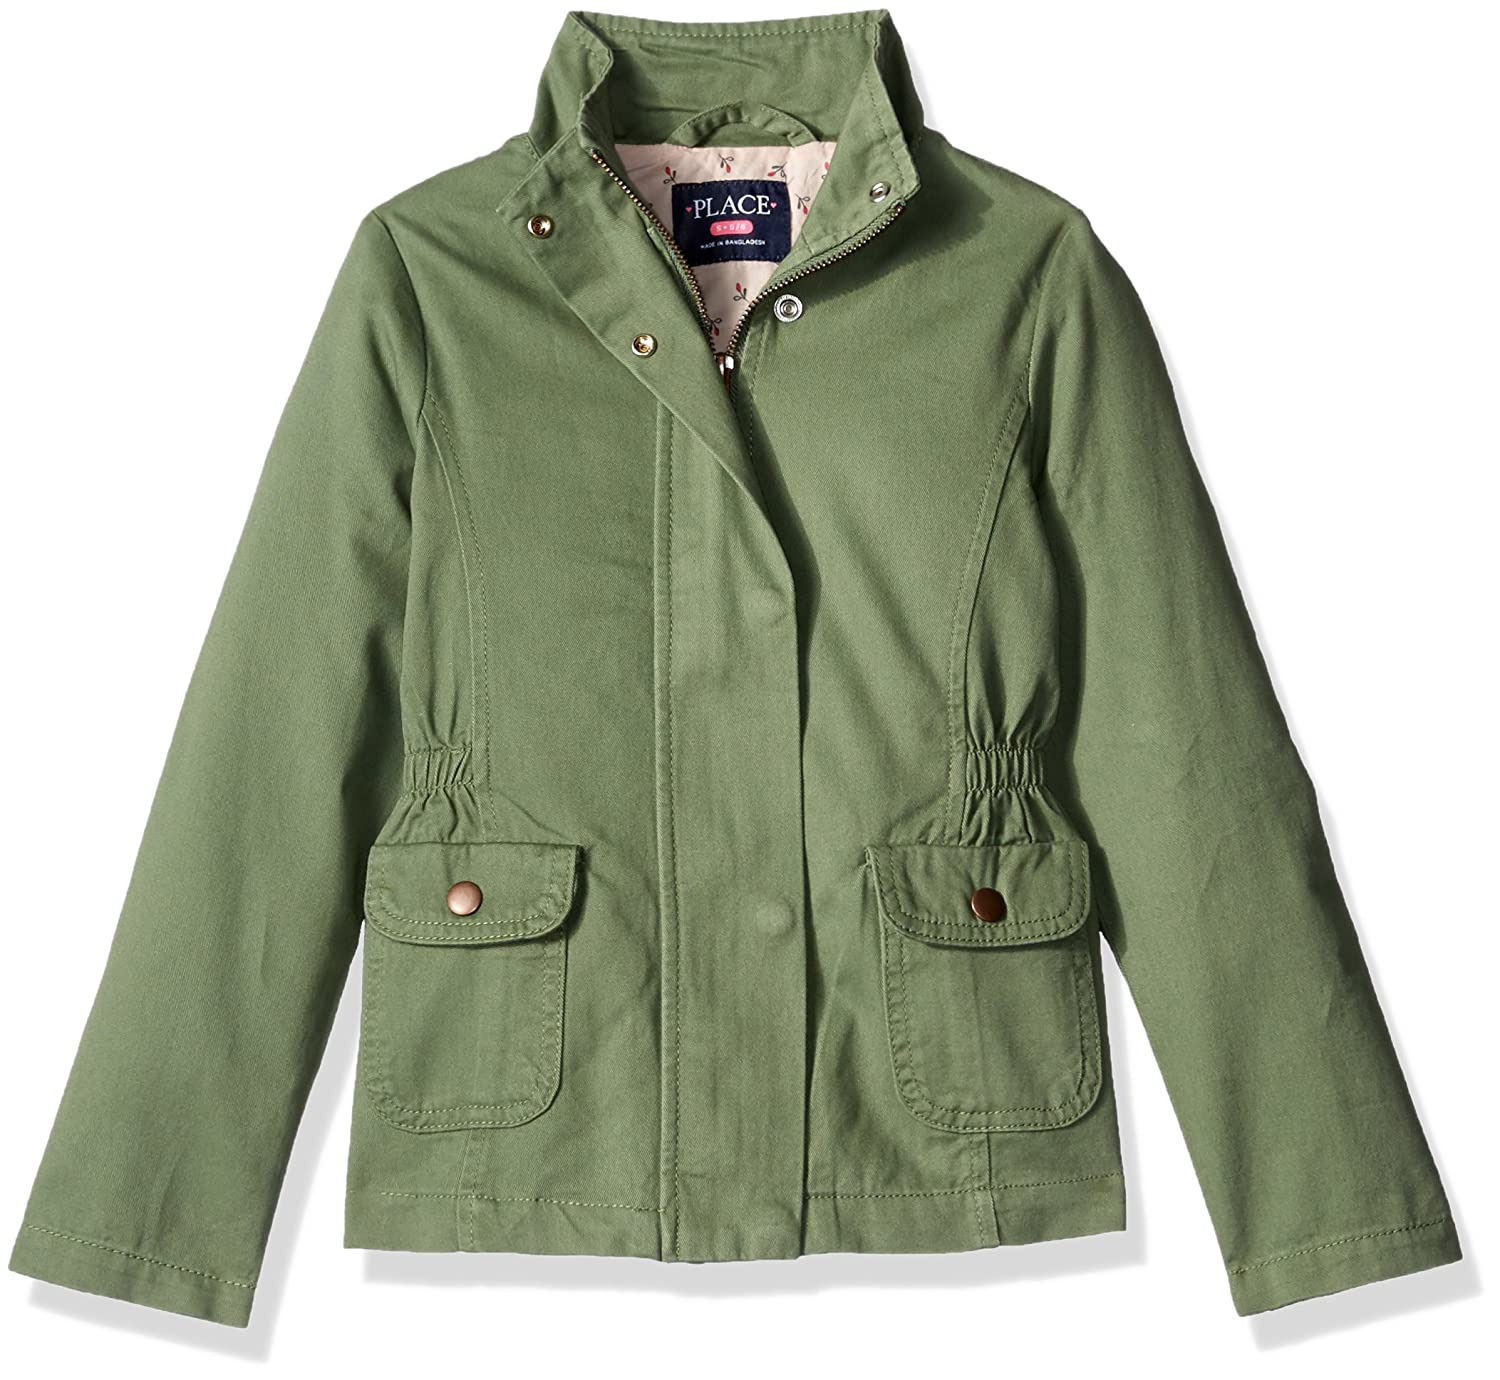 The Childrens Place Girls Light Jacket